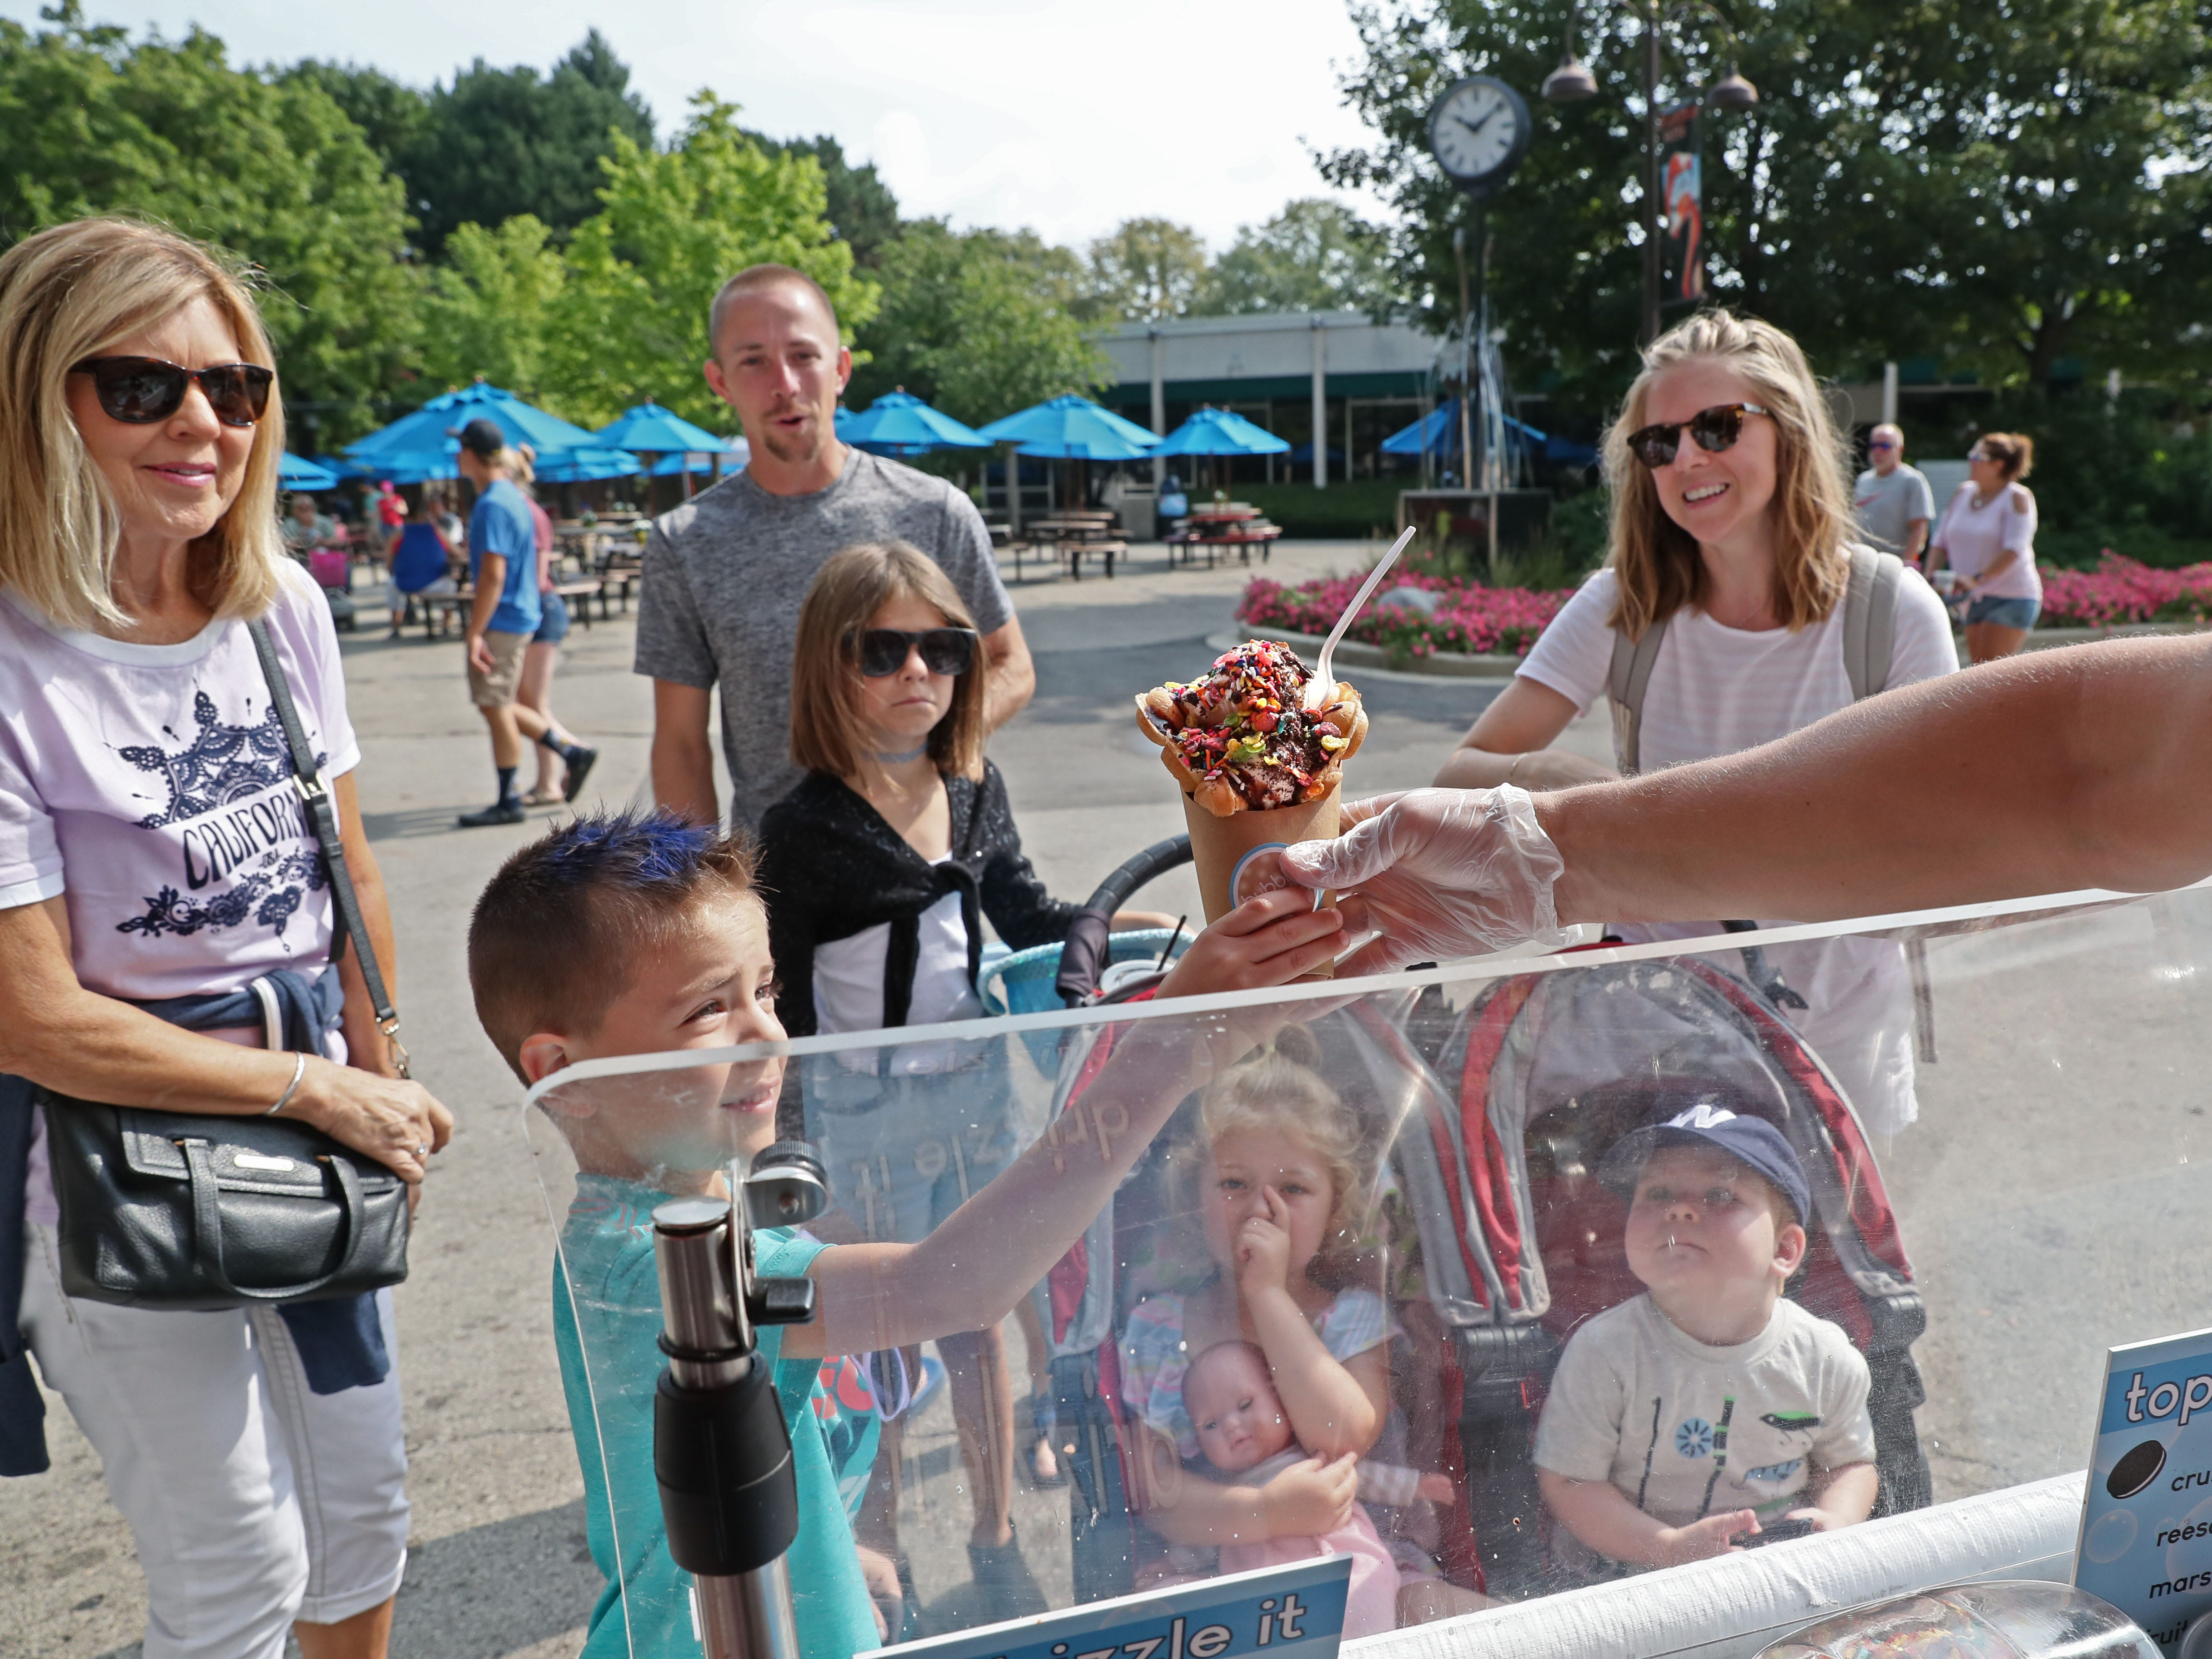 Marcus Hansen, 6, of Oconomowoc is handed a bubble waffle from Bubble Waffle Shoppes as the rest of the family looks on in envy.  From left are his great-grandmother, Vicki Smith of Watertown, father, Terry Hansen, sister Melanie Hansen, 8, aunt, Nicole Deklotz of Hales Corners, and her two children, Ruthie Deklotz, 4, and Will Deklotz, 2.